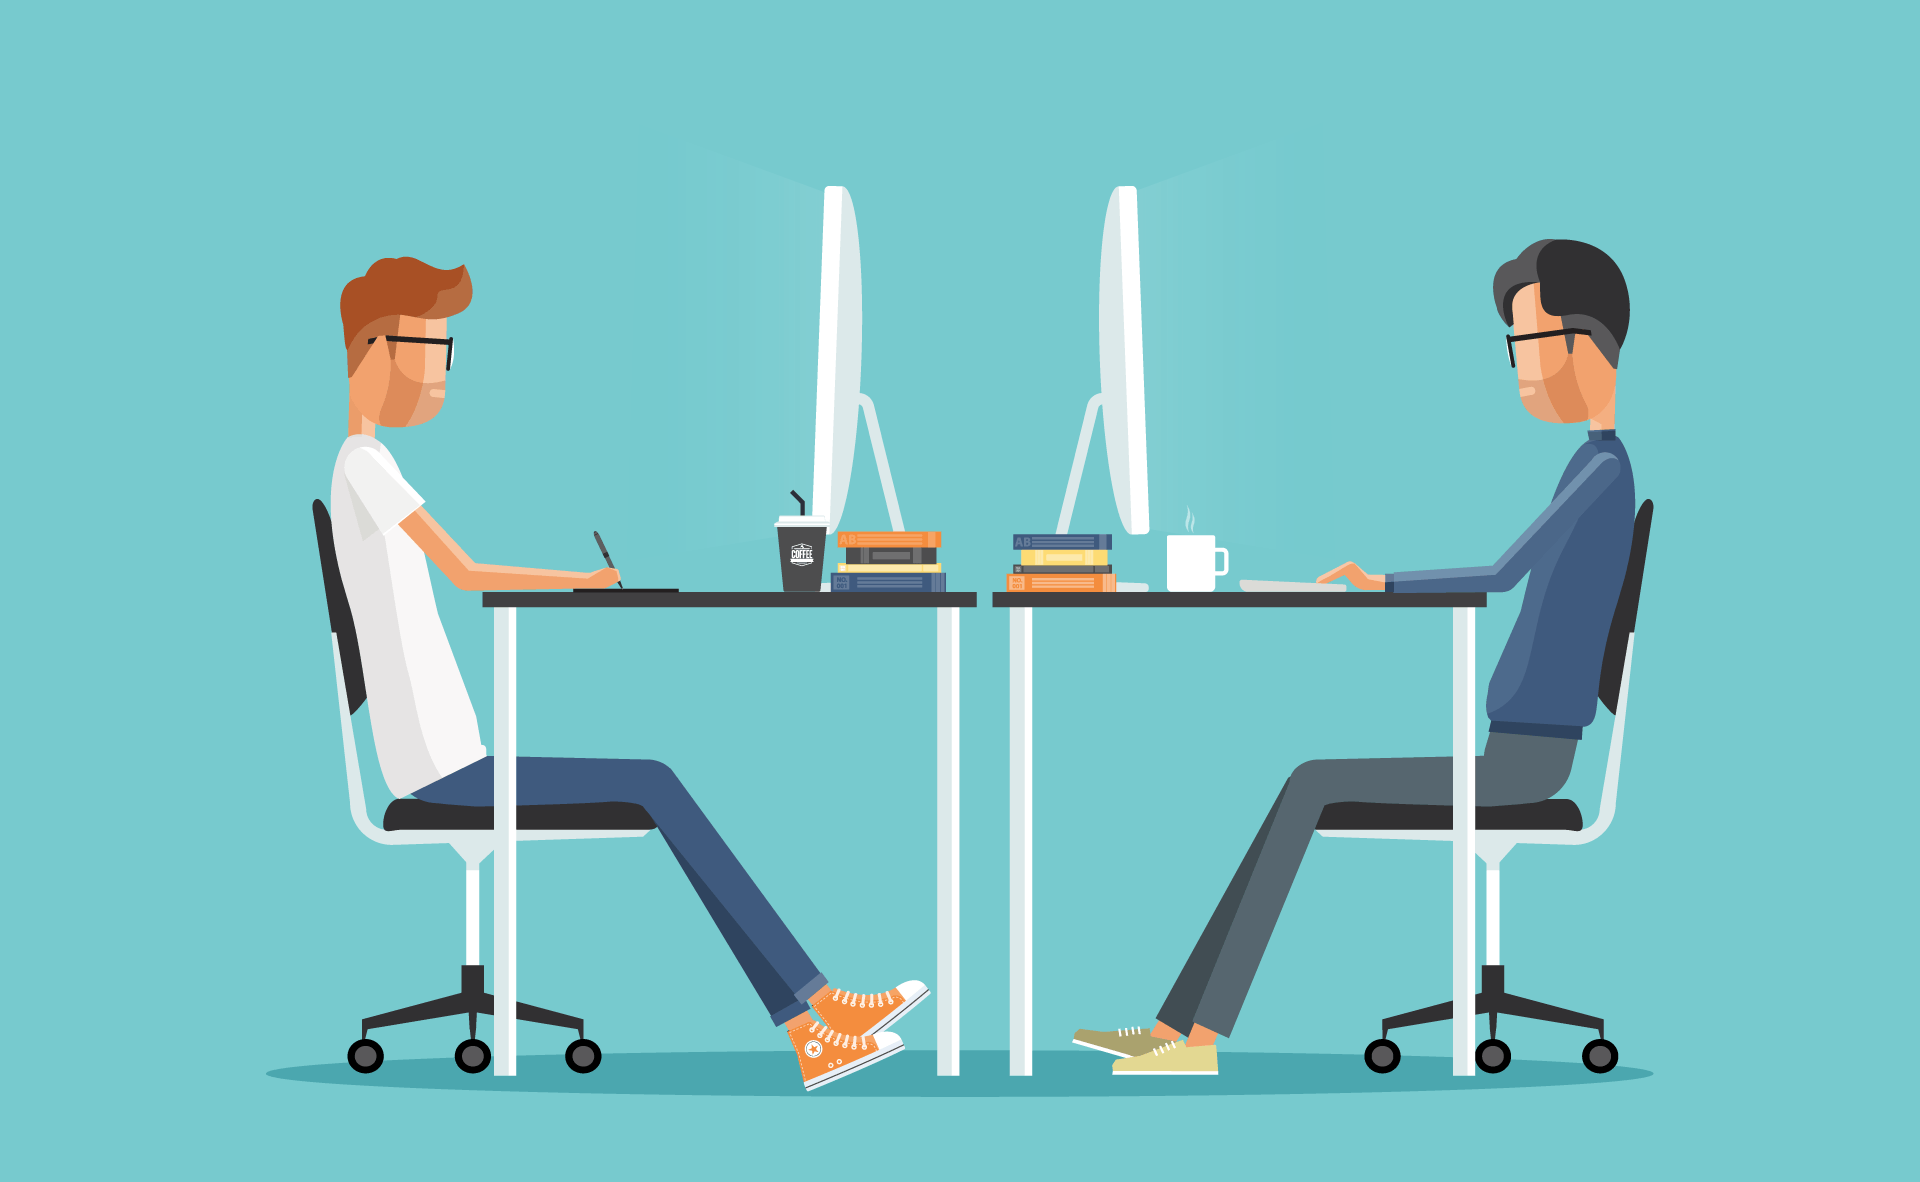 Illustration of two creatives at work, facing eachother